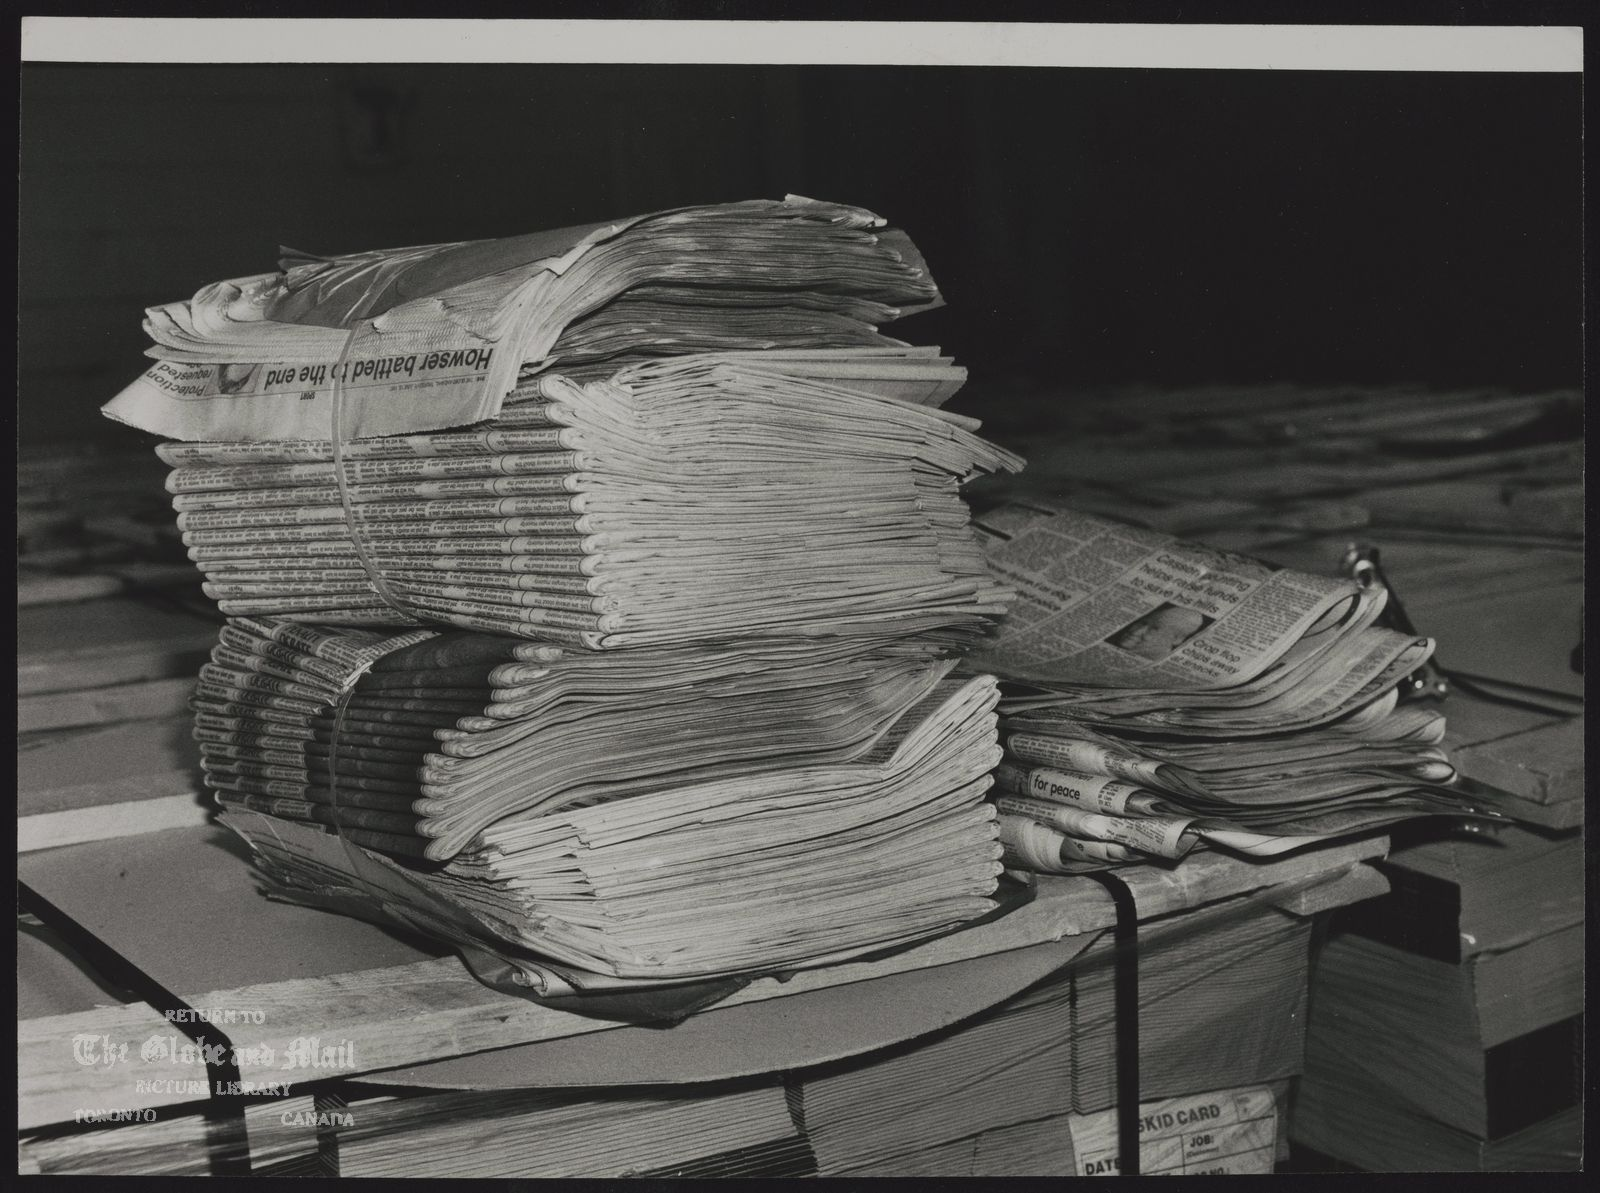 NEWSPAPERS [Piles of Globe and Mail newspapers bound and ready to be delivered].